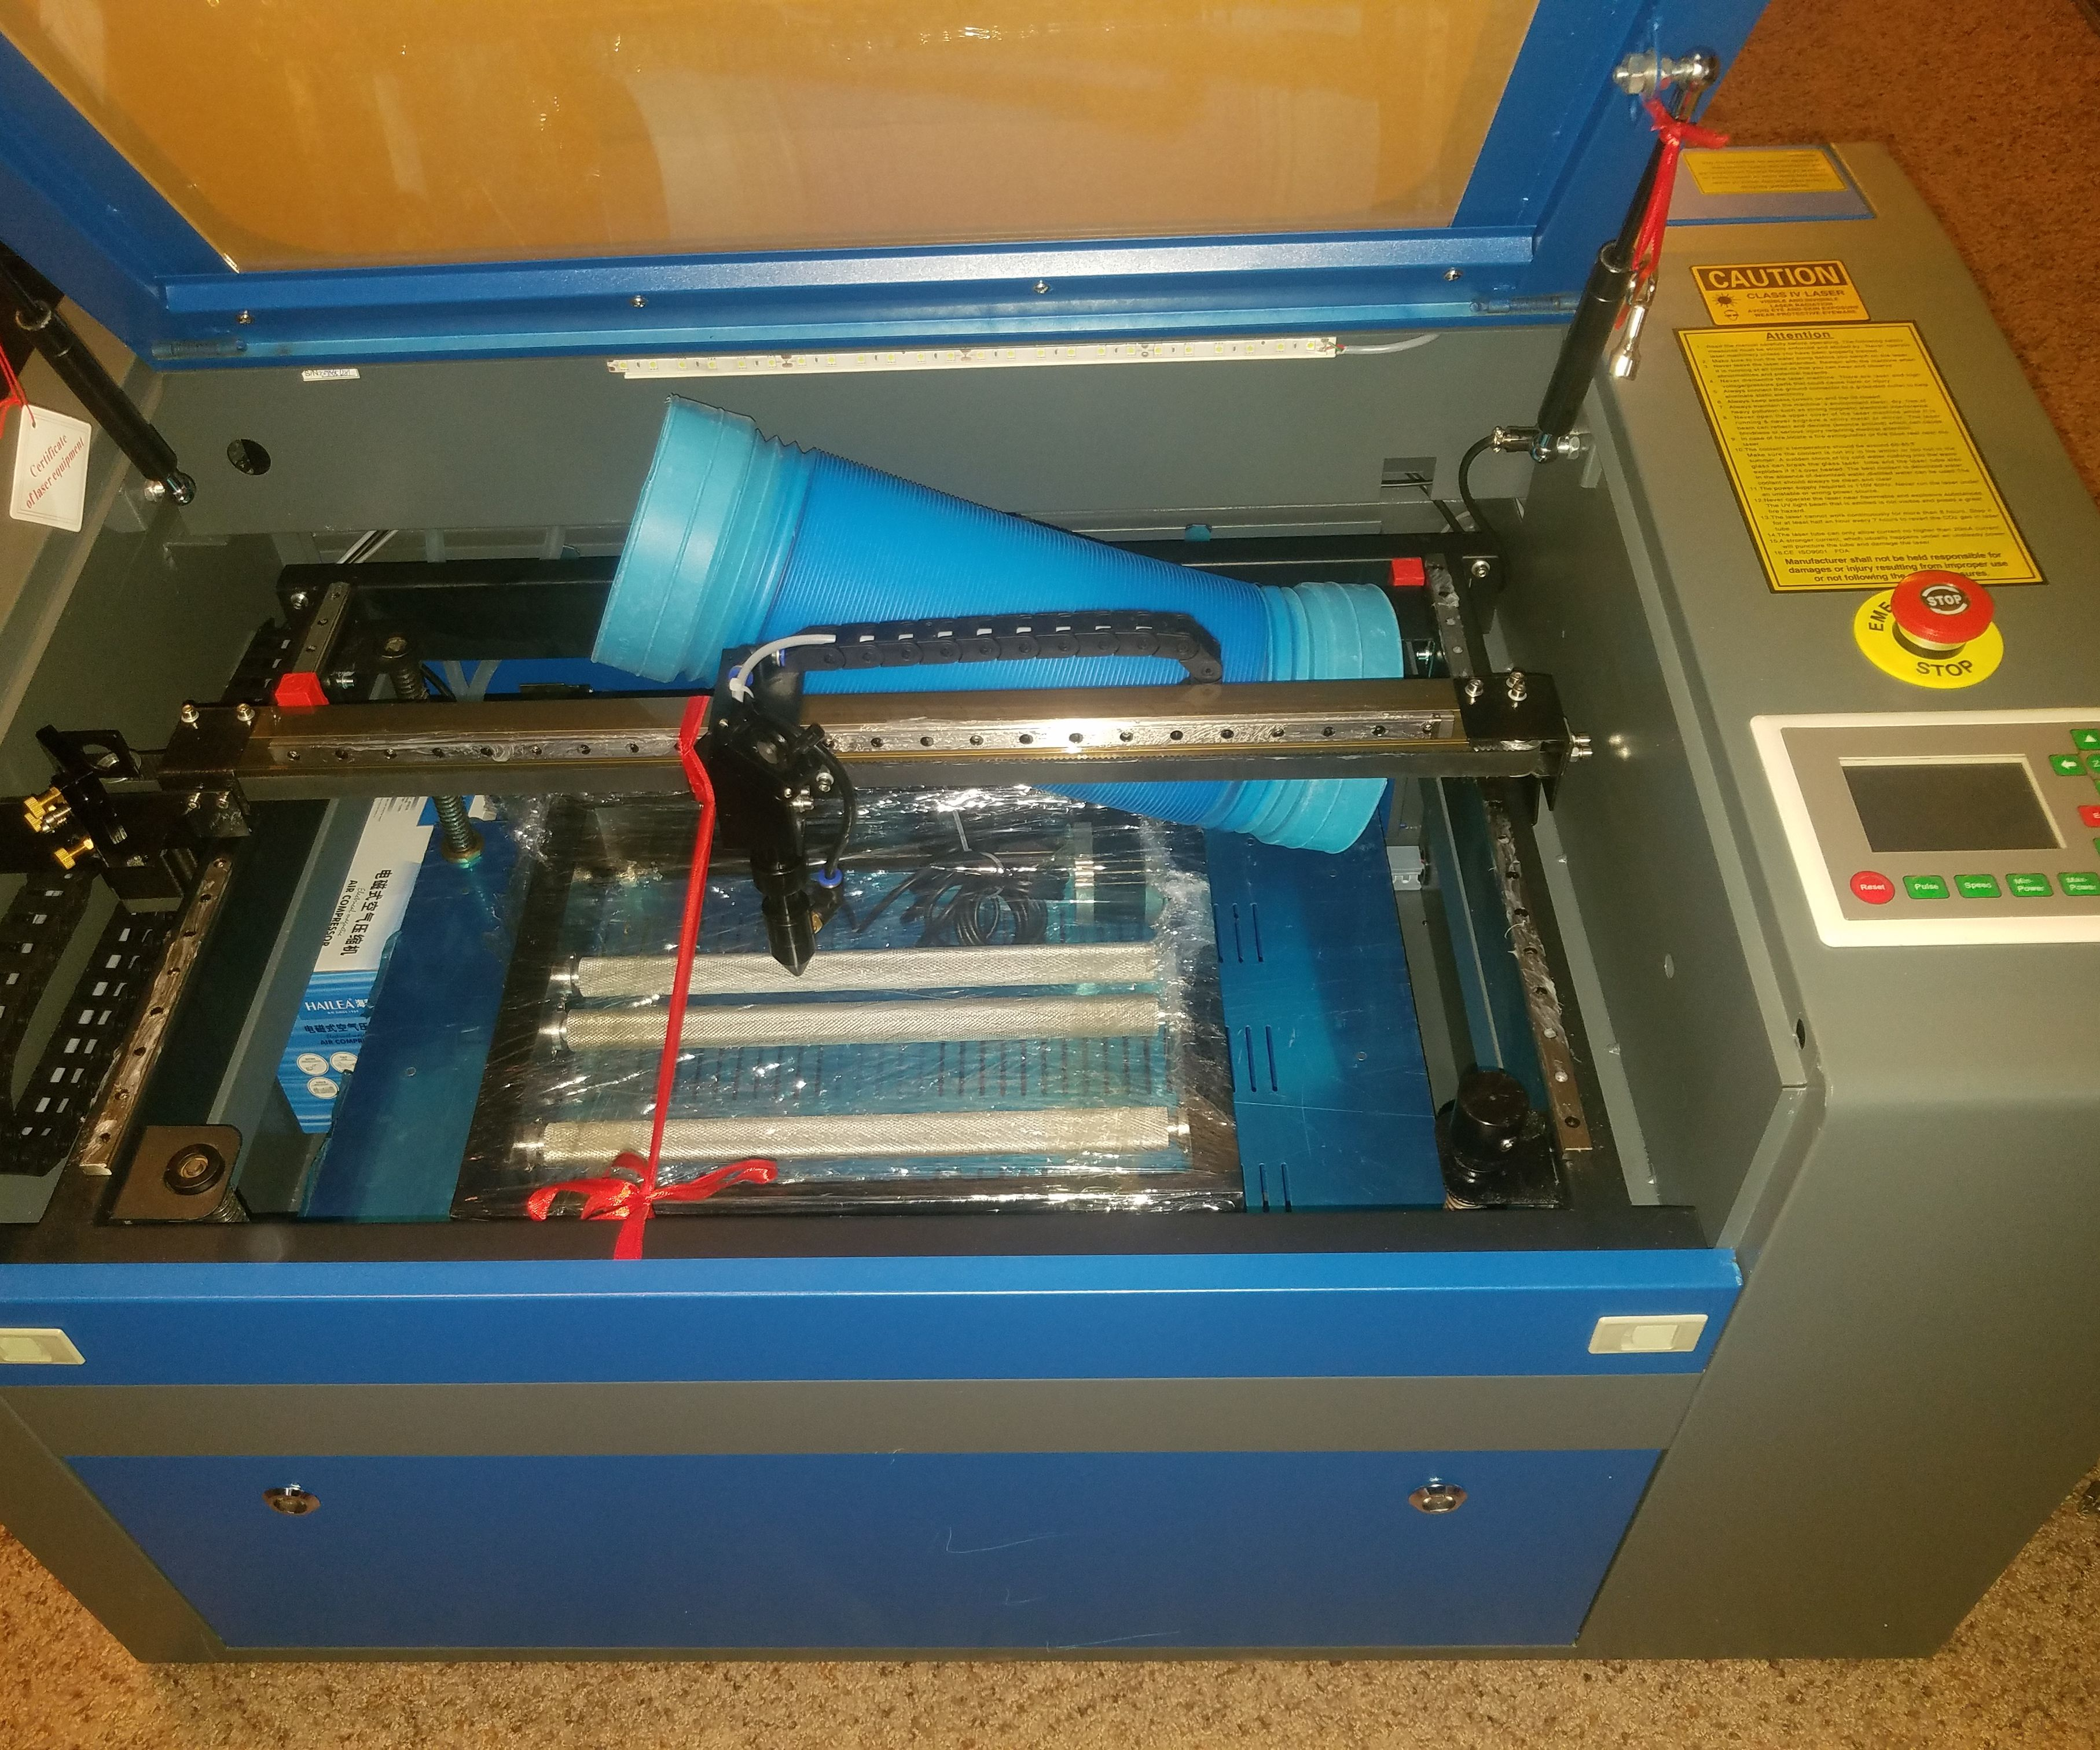 Getting Started With a Chinese Laser Cutter